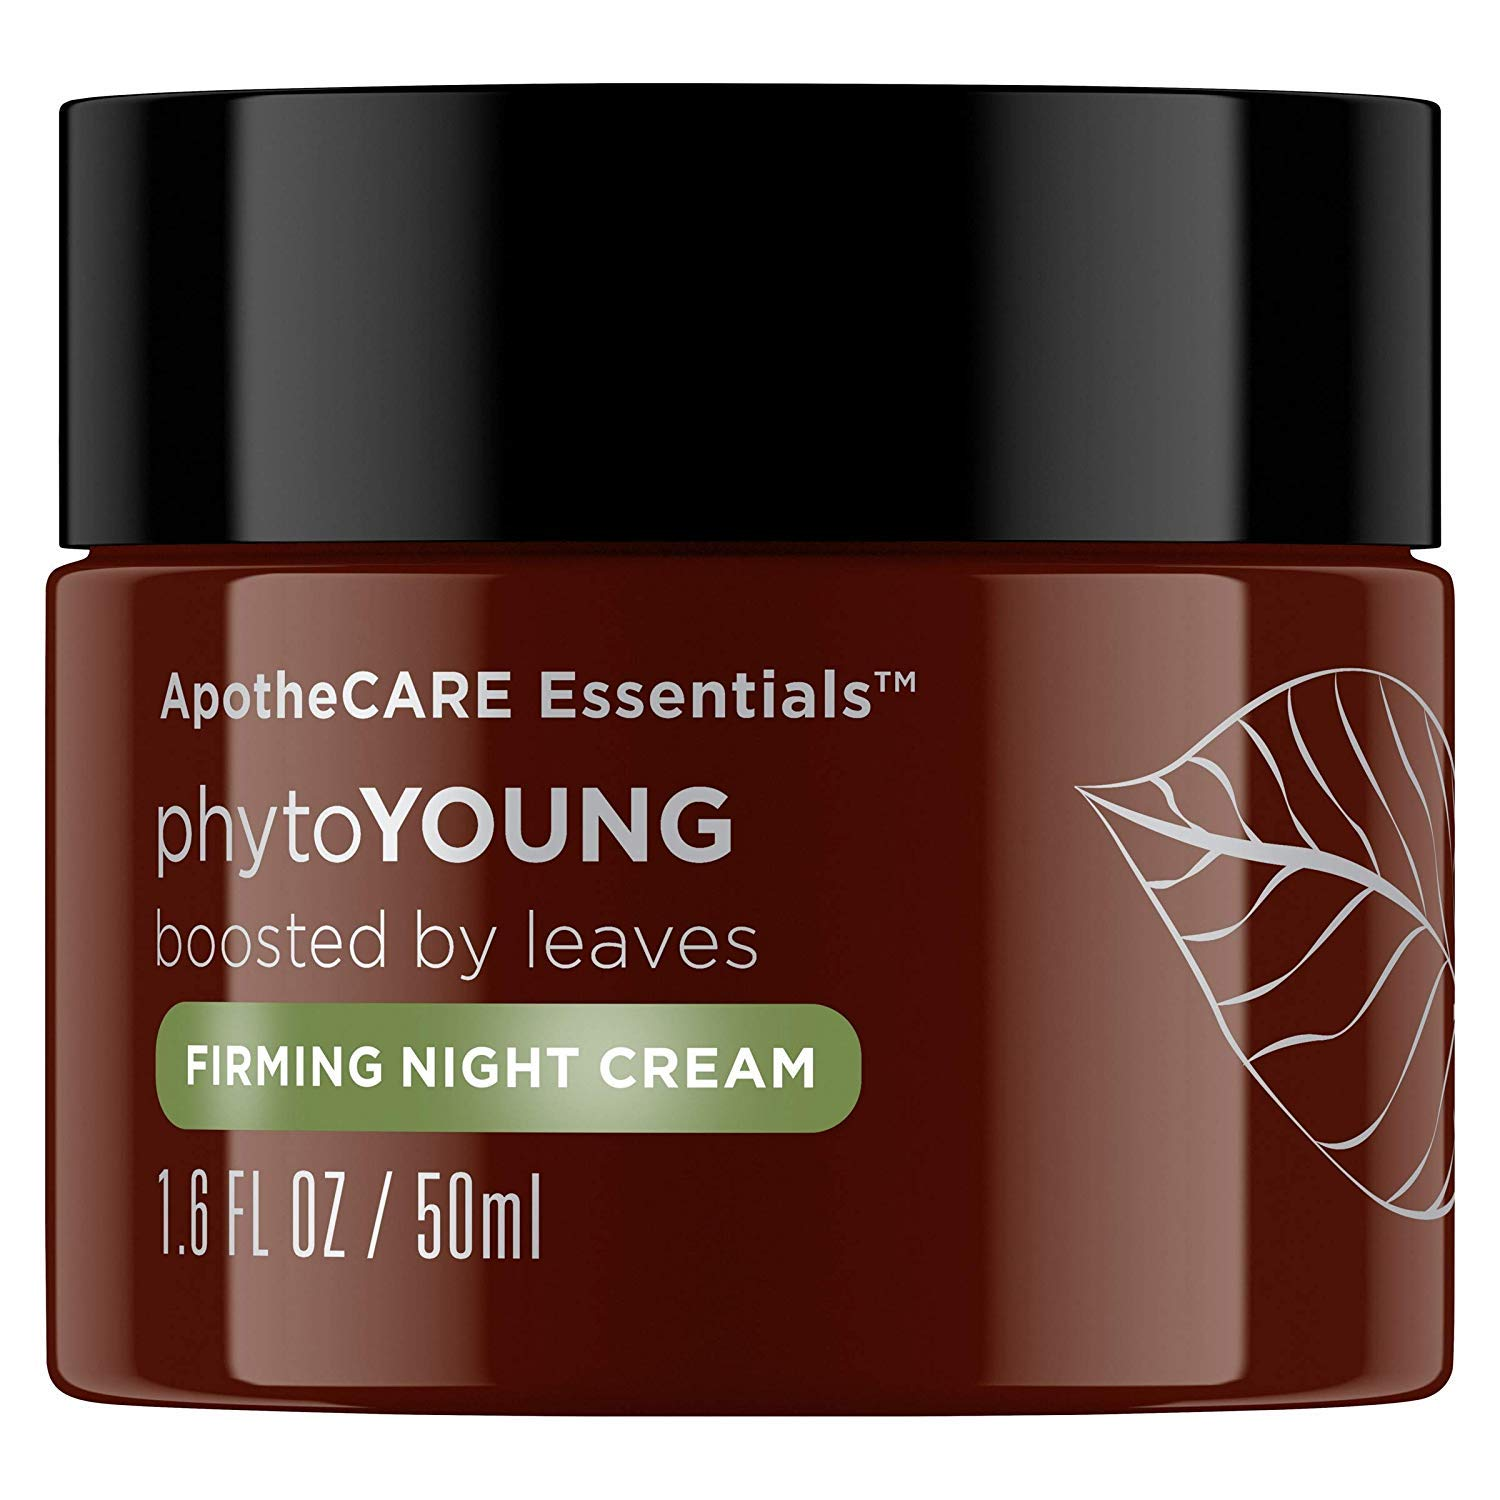 ApotheCARE Essentials Phytoyoung Firming Night Cream 1.6 Oz